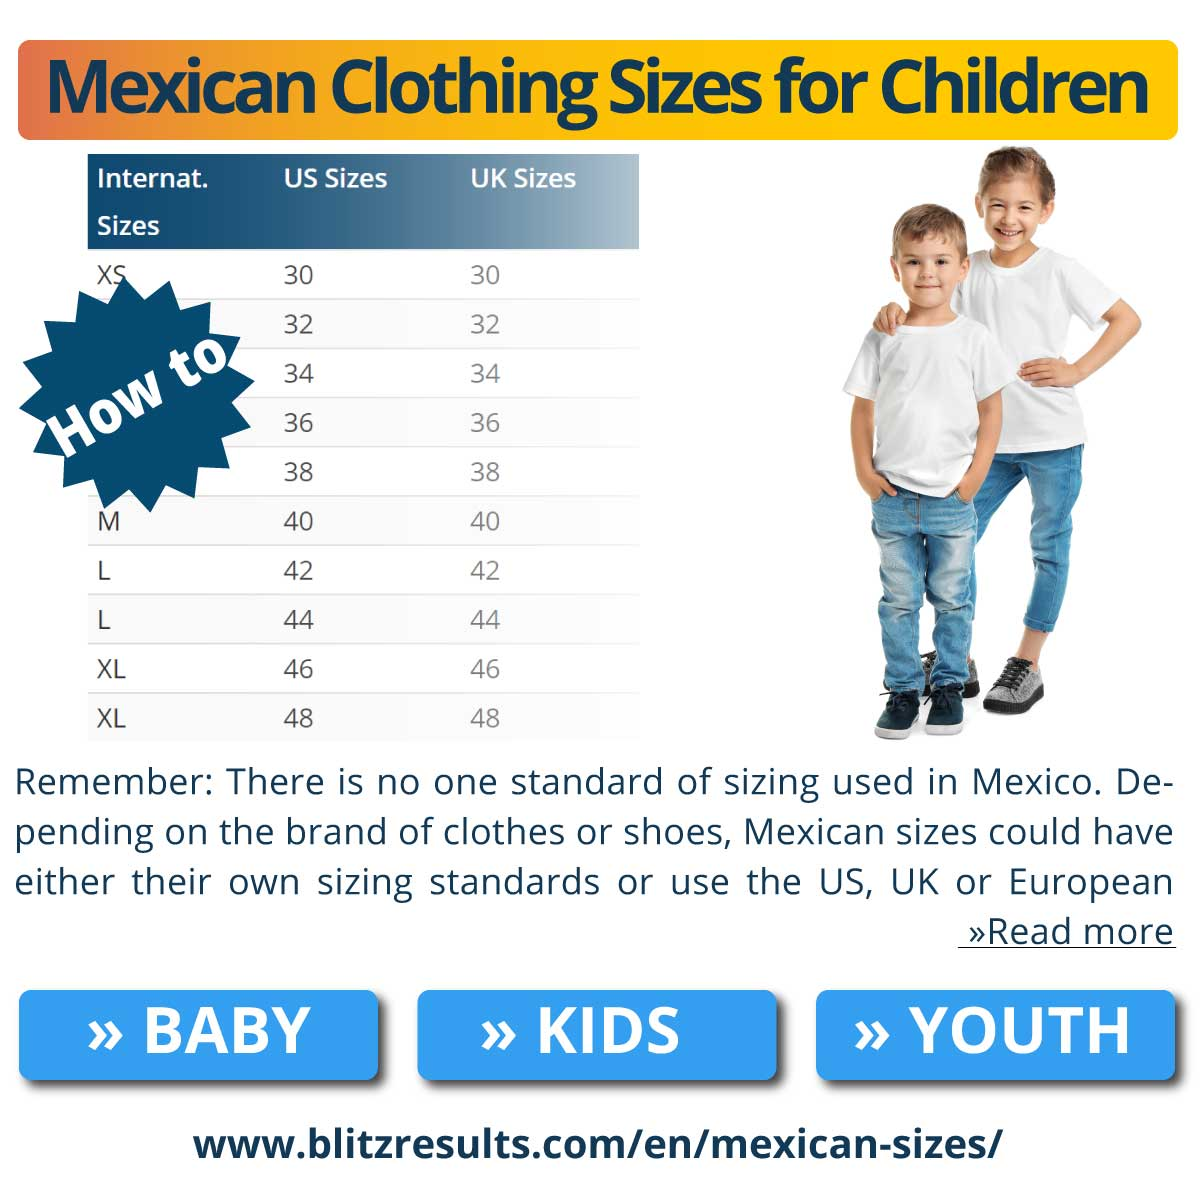 Mexican Clothing Sizes for Children